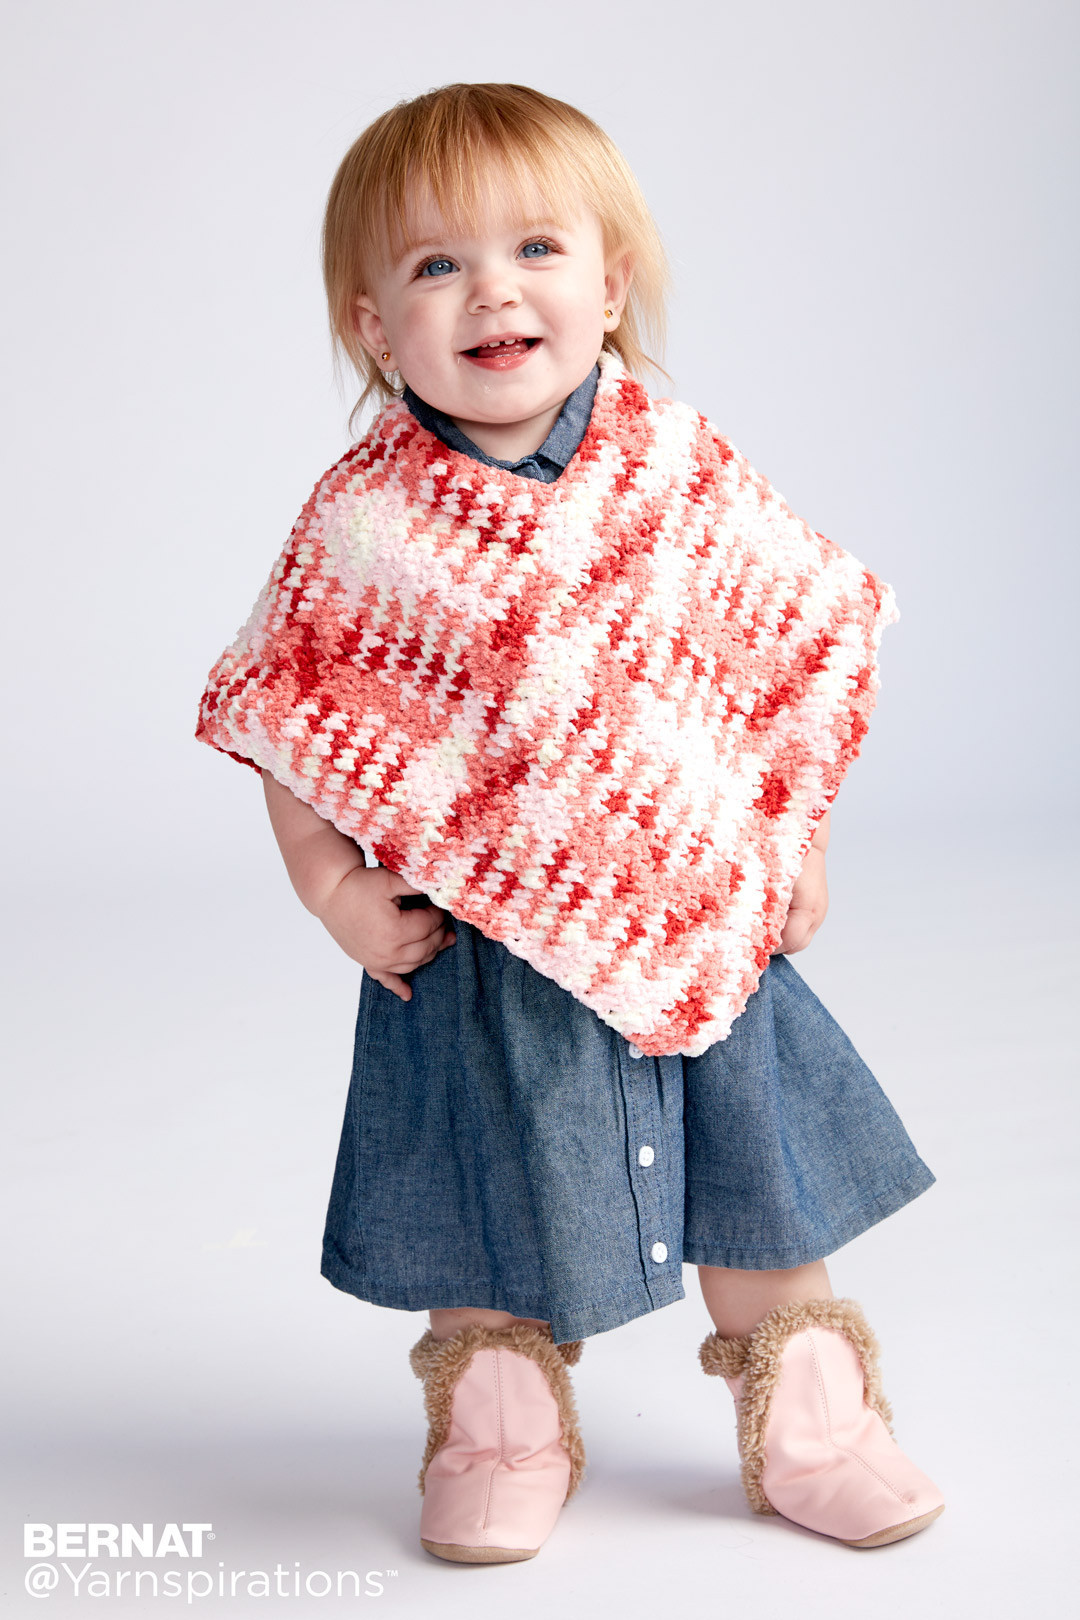 New Bernat Simple Crochet Baby Poncho Crochet Pattern Crochet Baby Poncho Of Amazing 45 Pics Crochet Baby Poncho